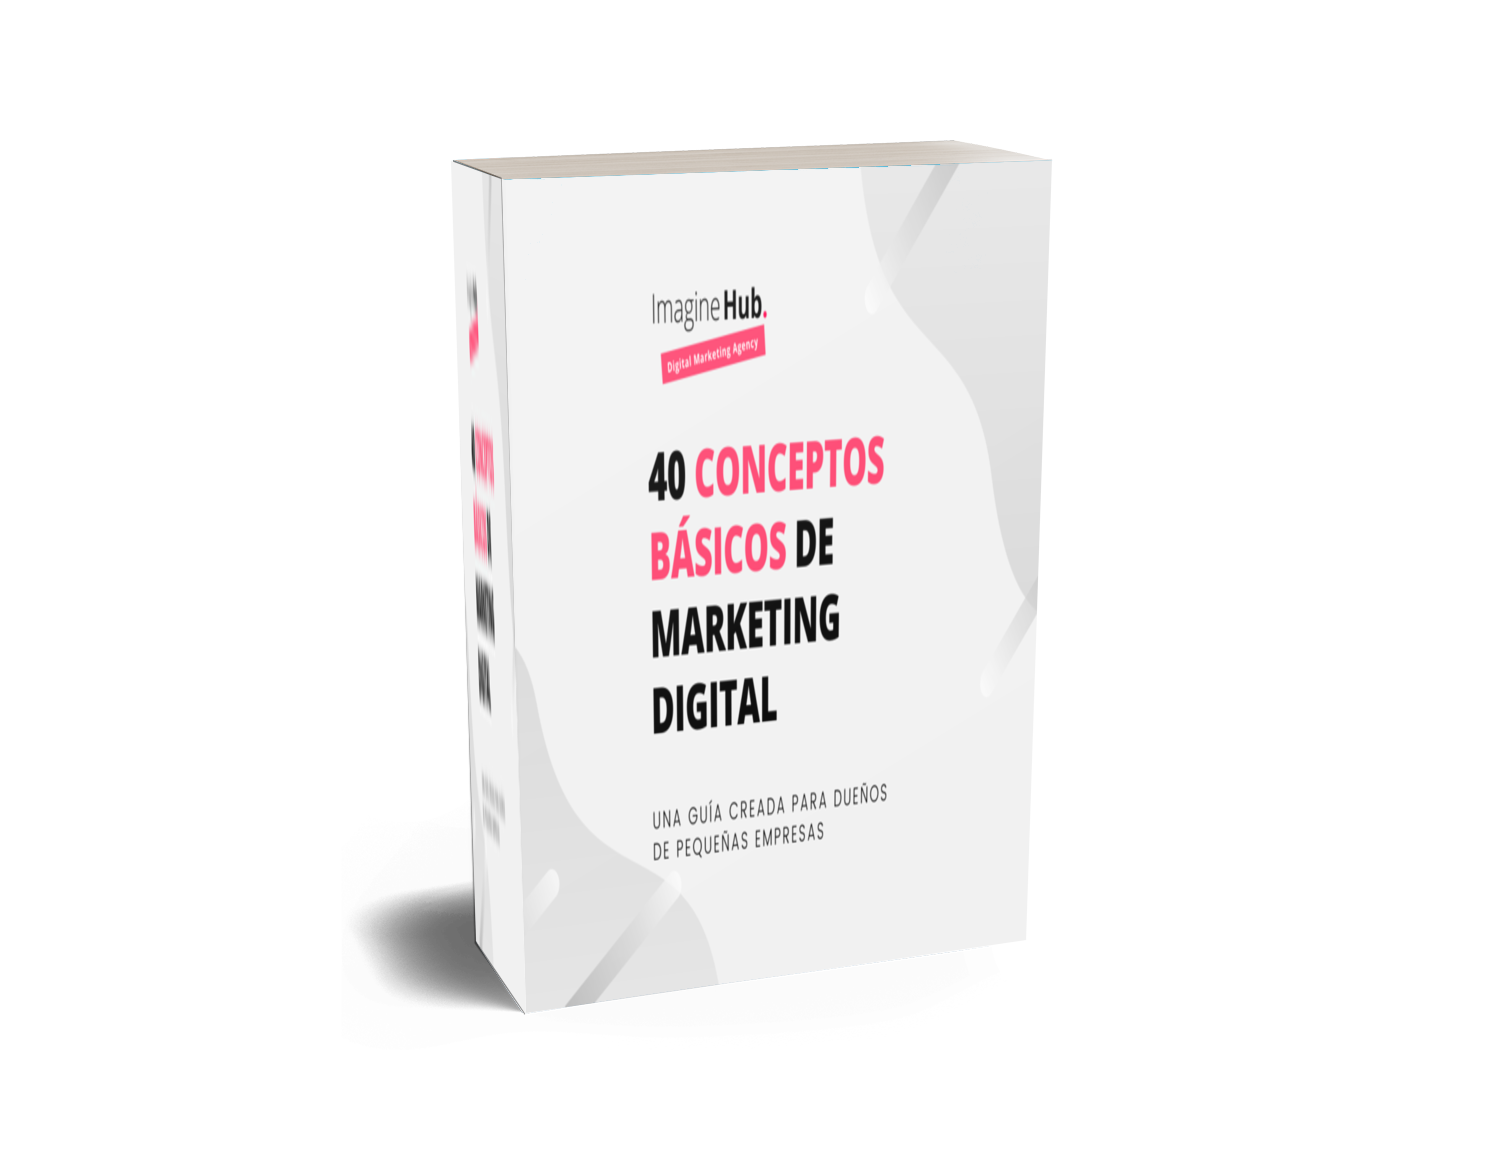 40 conceptos básicos de marketing digital